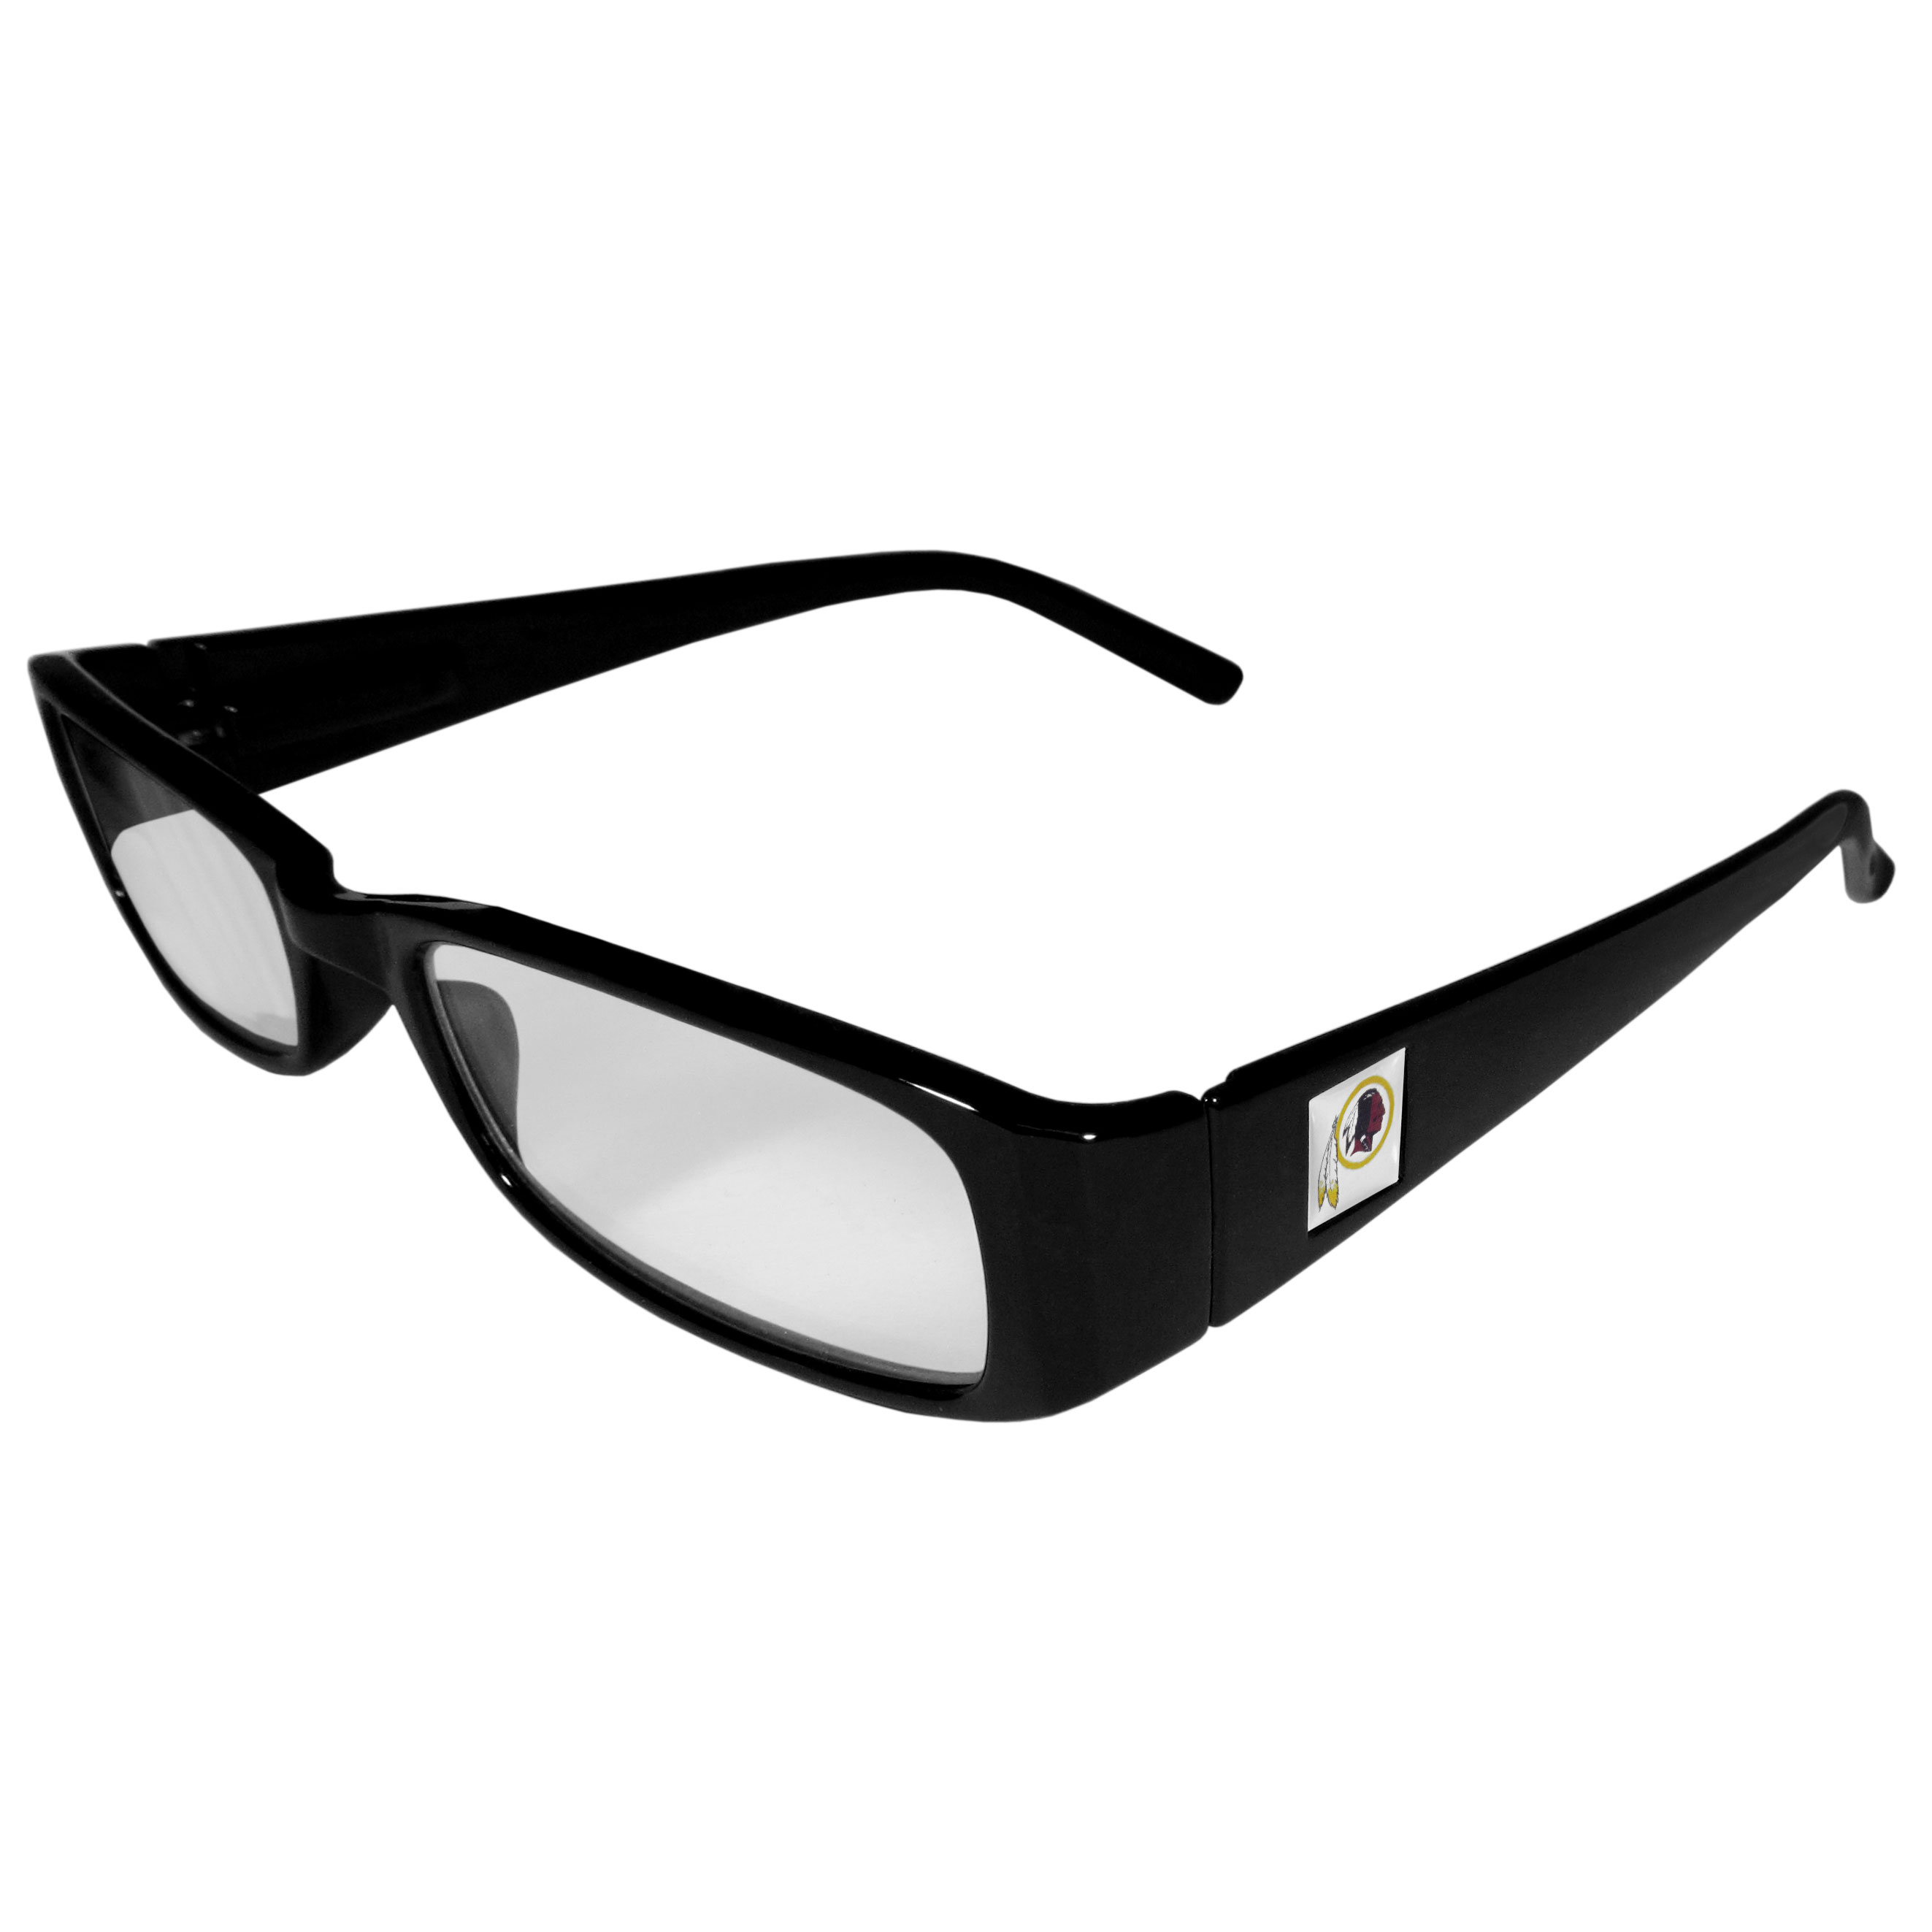 Washington Redskins Black Reading Glasses +1.25 - Our Washington Redskins reading glasses are 5.25 inches wide and feature the team logo on each arm. Magnification Power 1.25